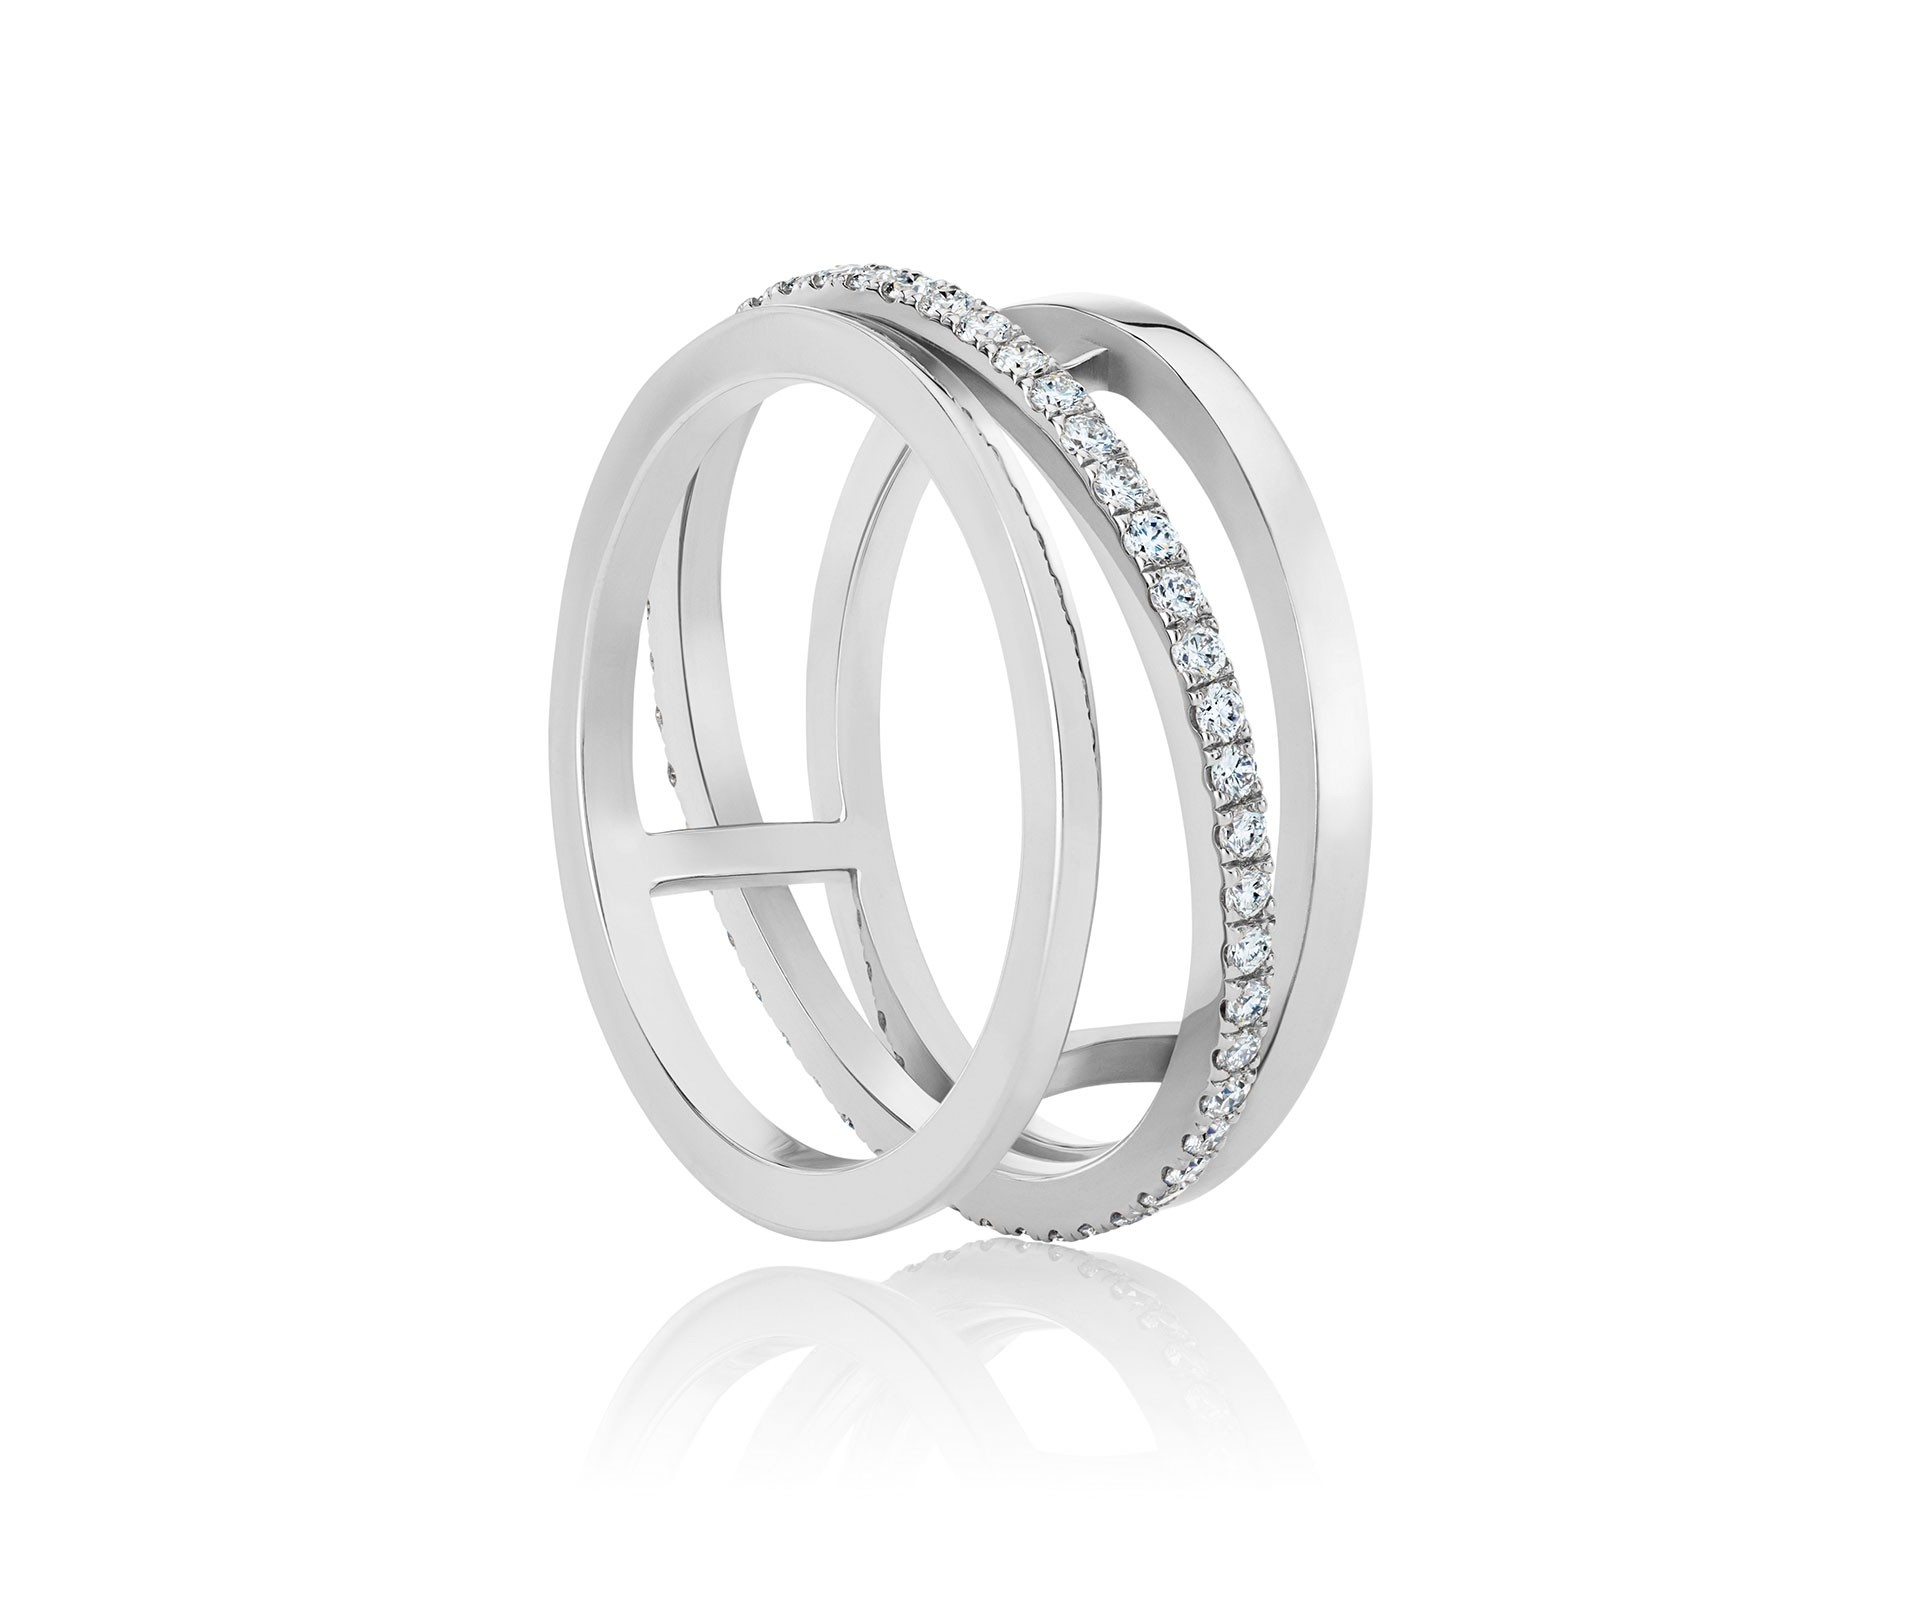 Diamond Rings And Bands For Women | De Beers Us In 2019 Diamond Layered Anniversary Ring In White Gold (Gallery 18 of 25)